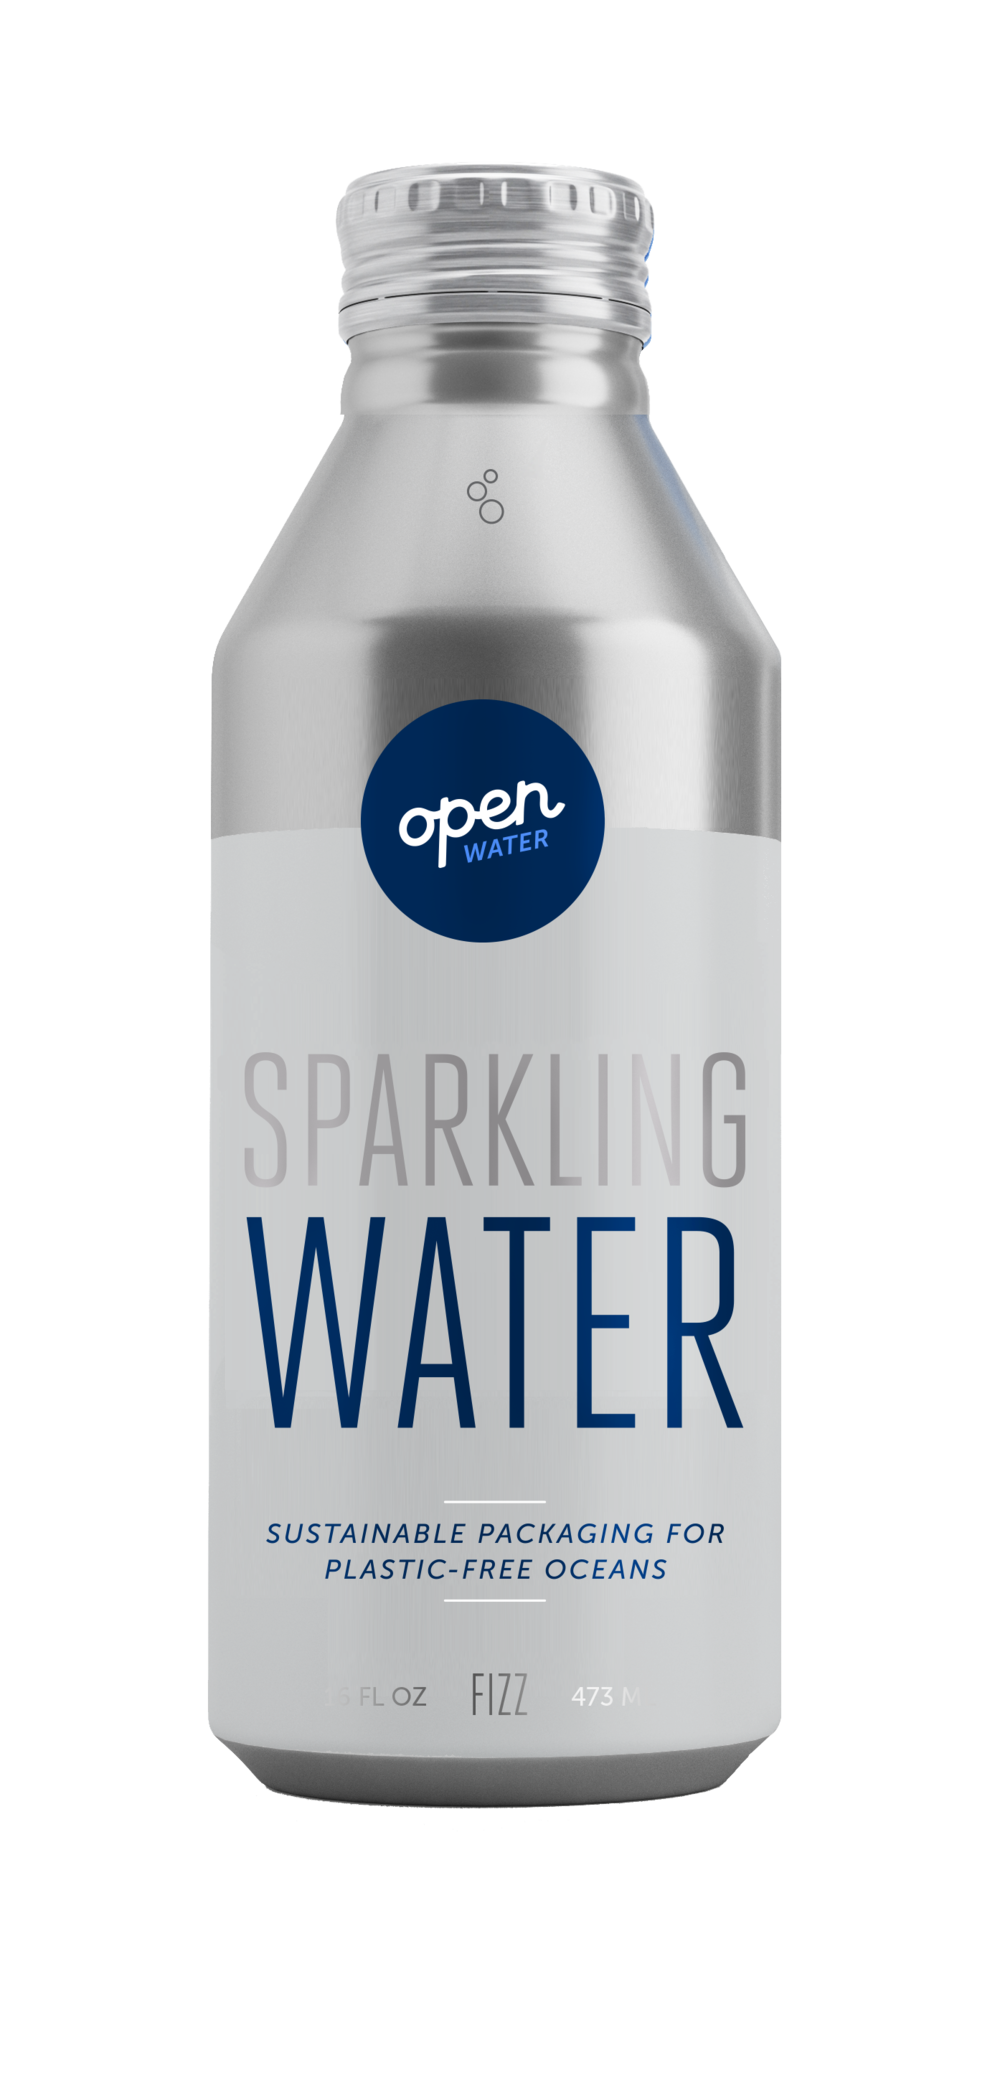 Open Water Sparkling Water in aluminum bottle